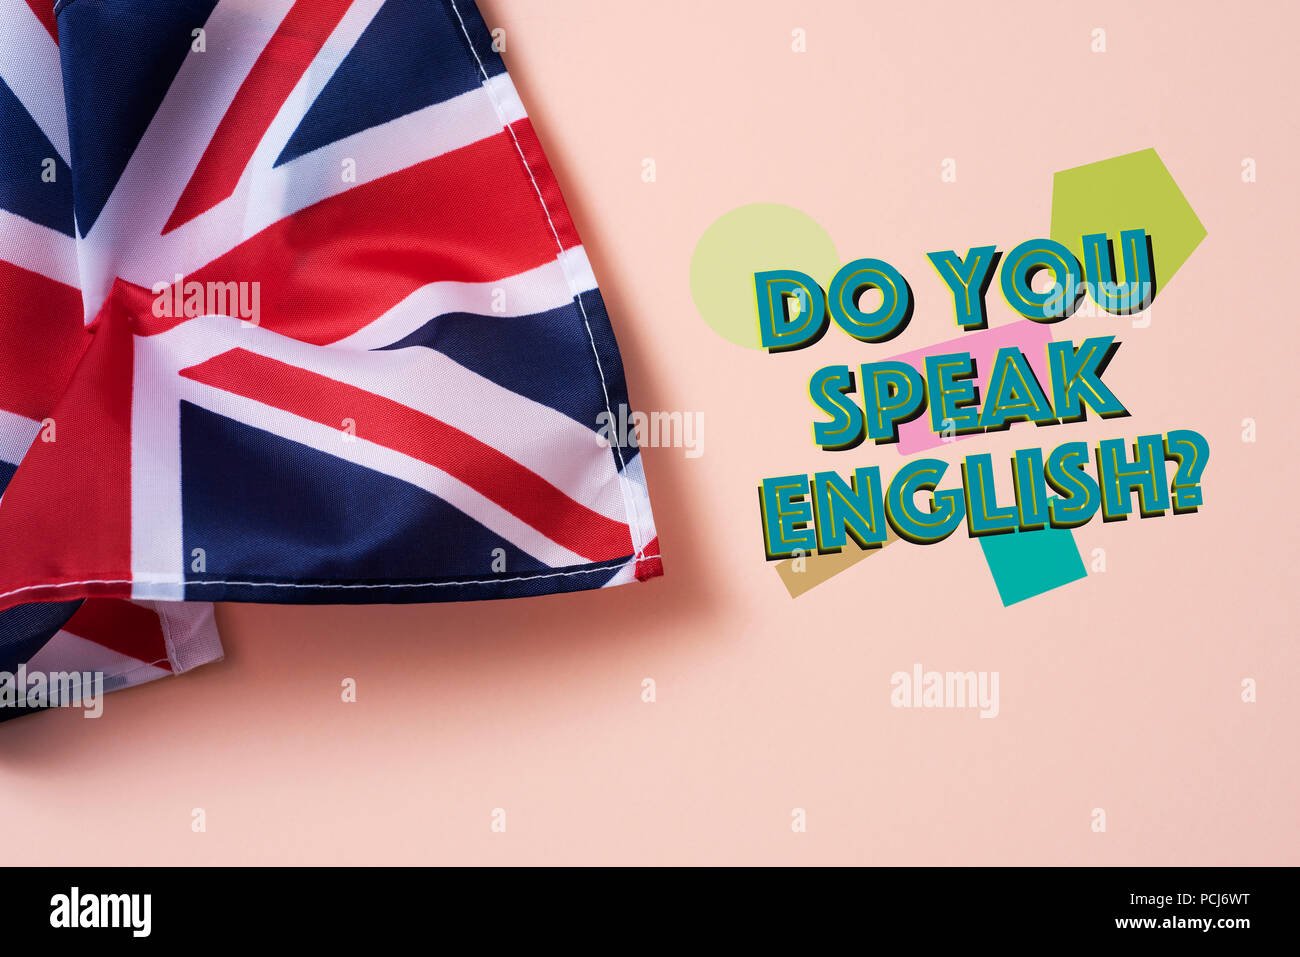 a flag of the United Kingdom and the question do you speak English? on a salmon pink background Stock Photo